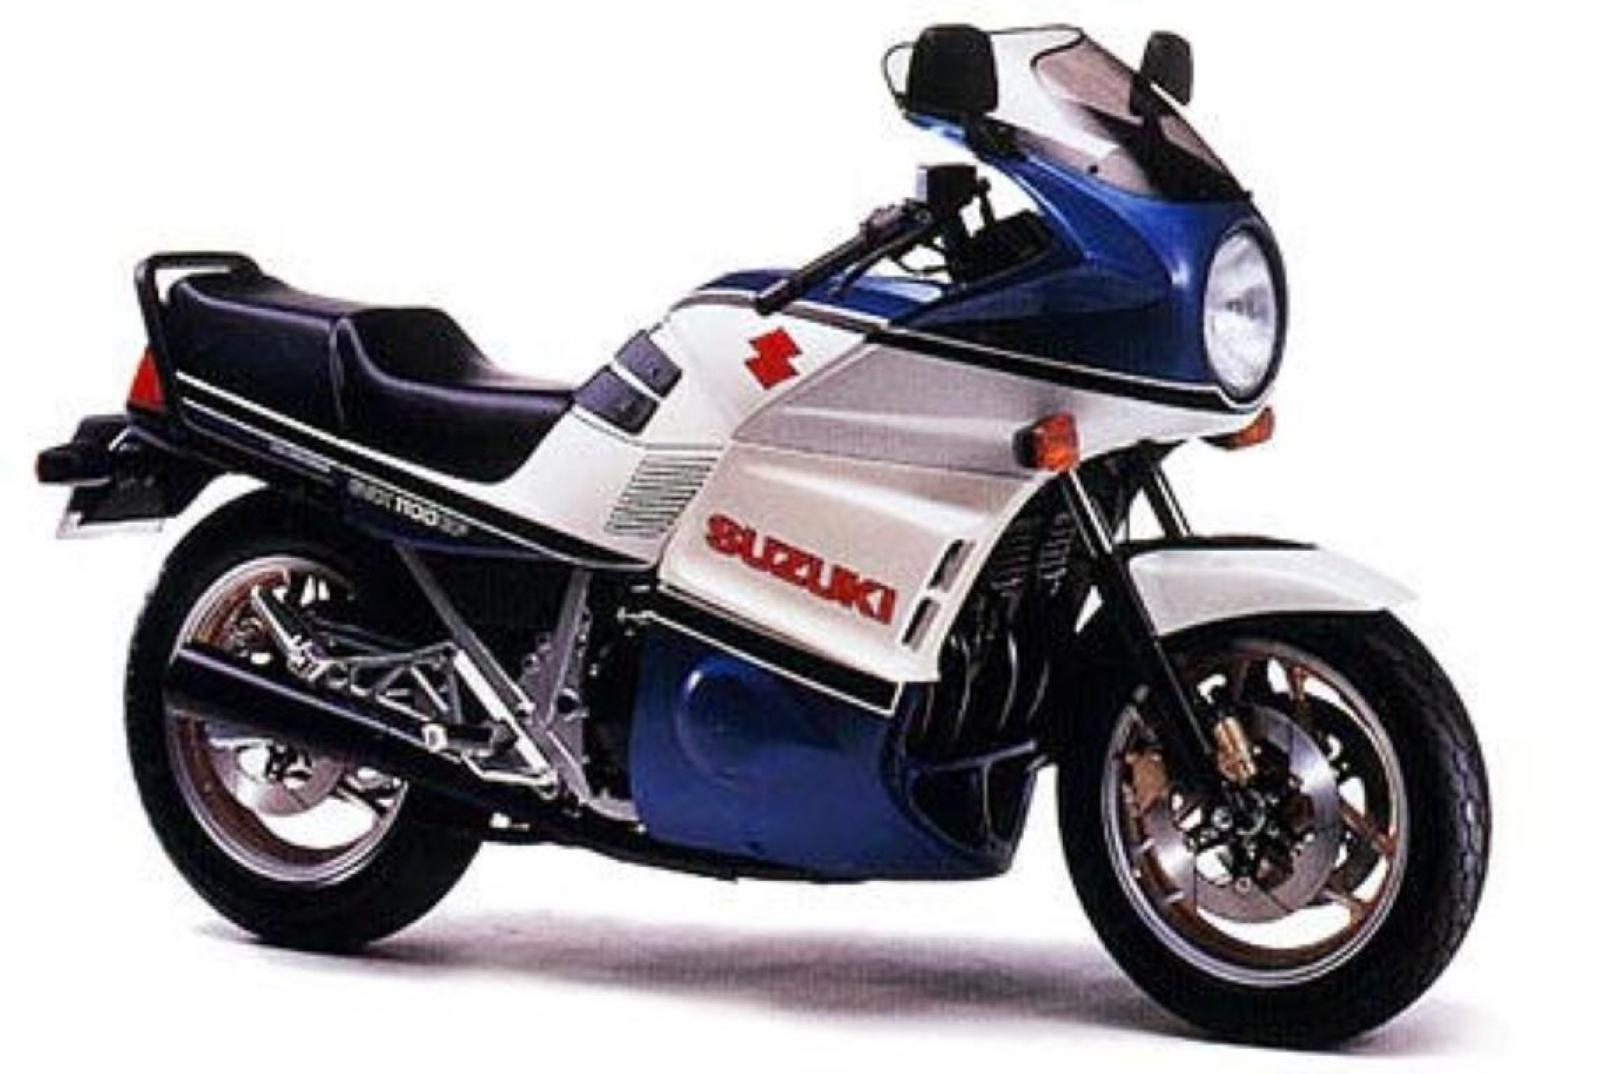 1986 Suzuki GSX 1100 EF (reduced effect) #1